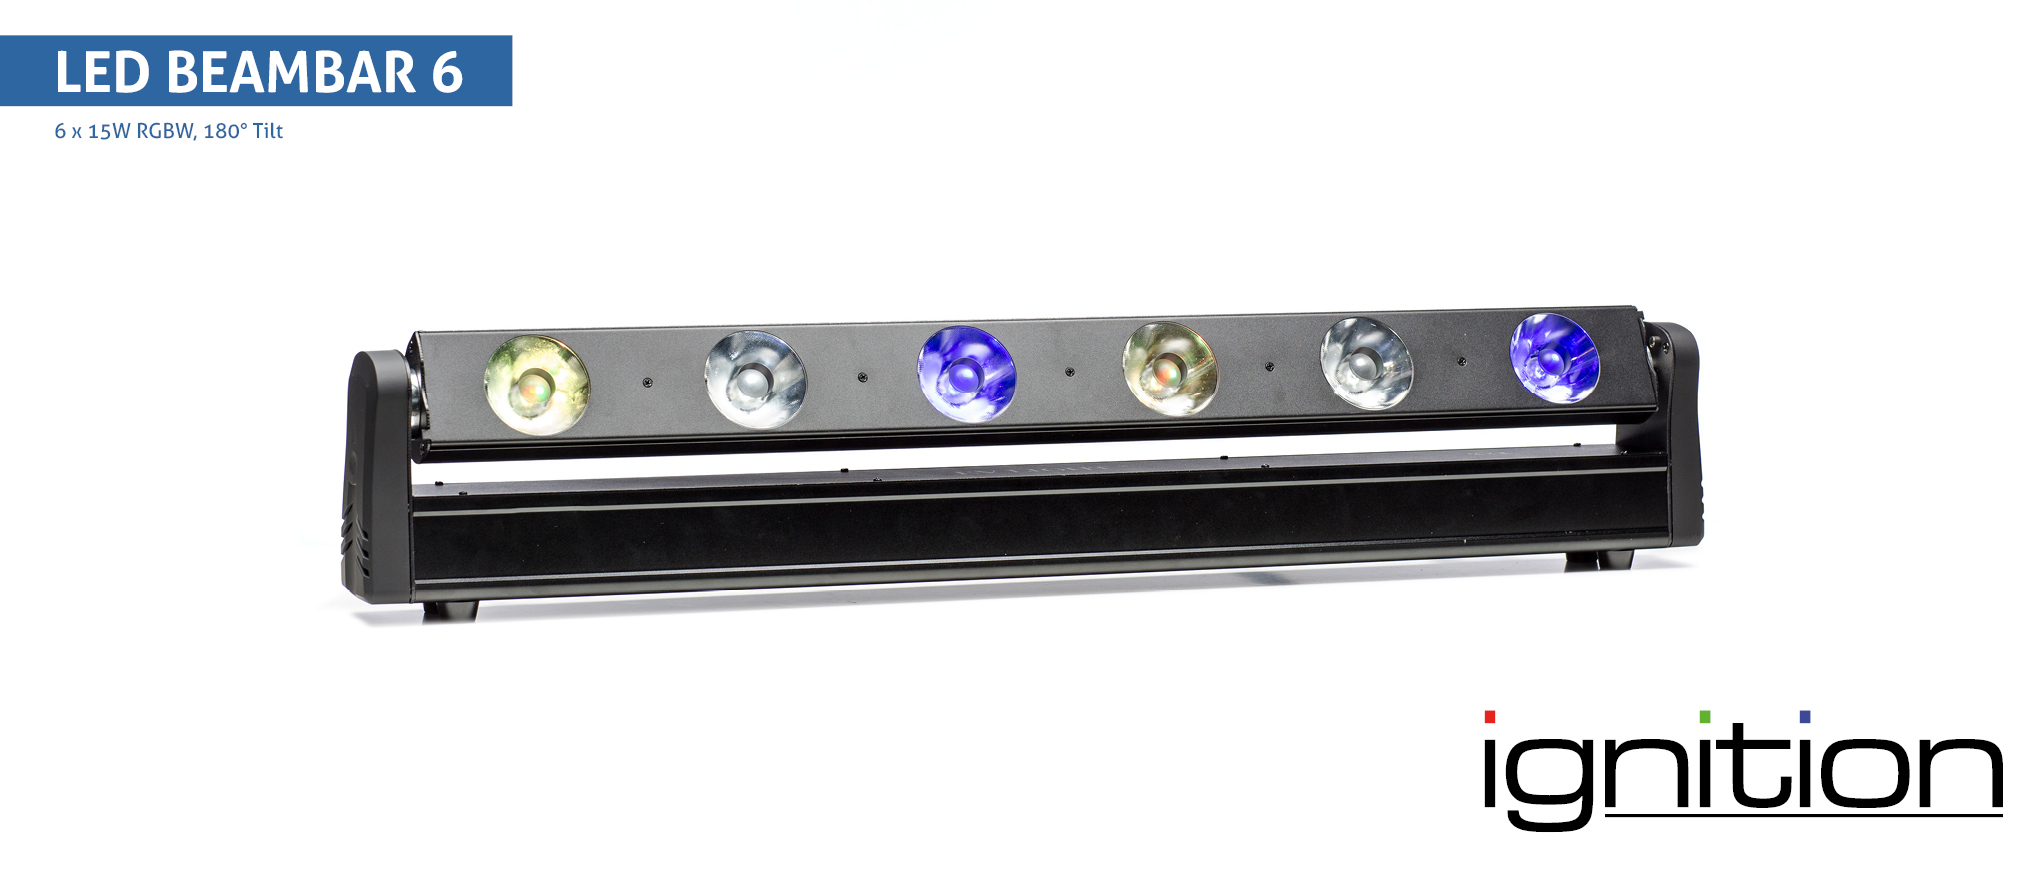 LED BeamBar 6 RGBW  6 x 15W 4in1 LED